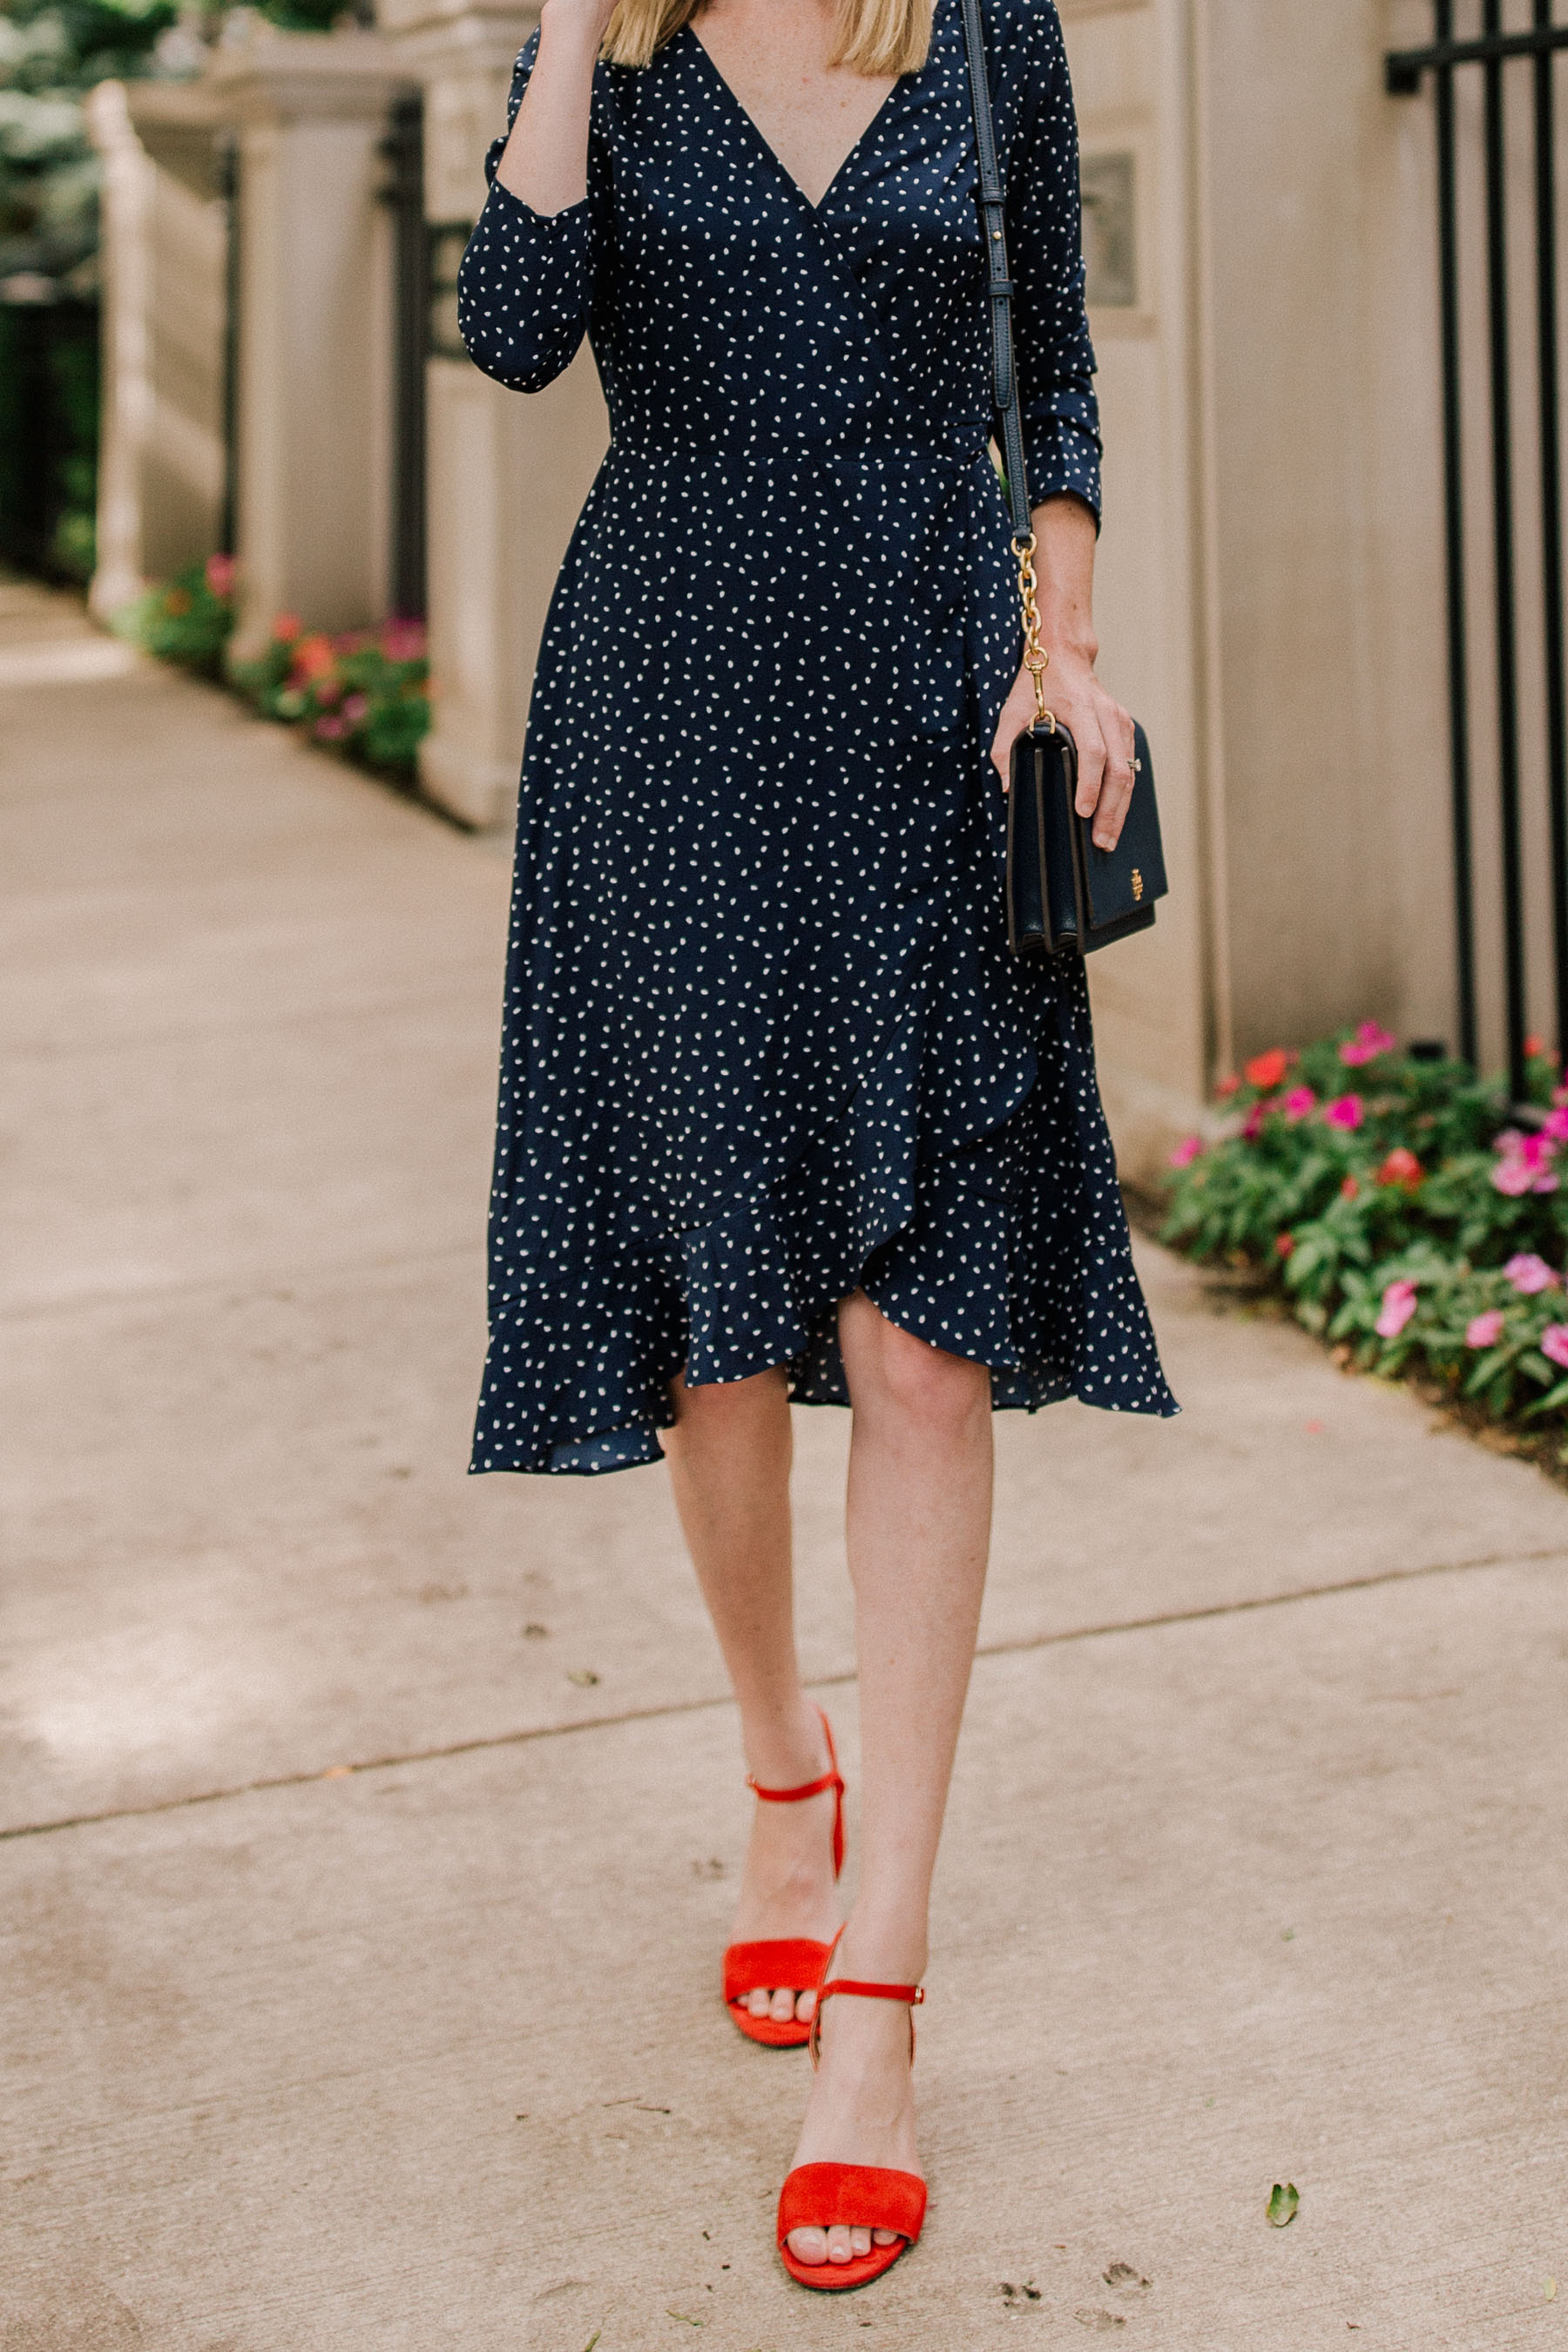 Nordstrom: Navy Polka Dot Dress / Tory Burch Navy Bag / Red Strappy Sandals(You can also find them at J.Crew.) - Kelly in the City